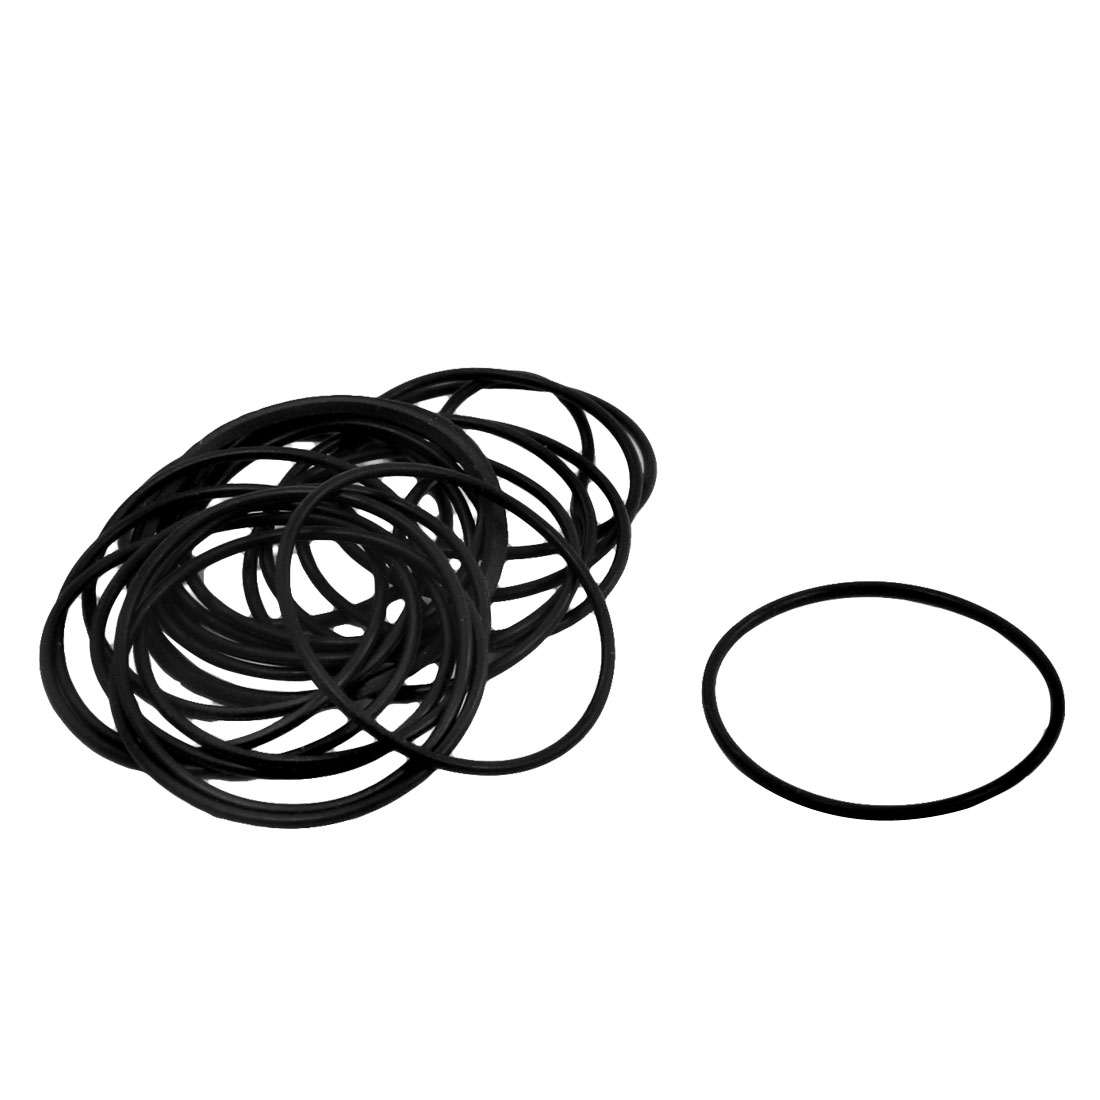 UXCELL 20 Pcs 30Mm Od 1Mm Thick Black Rubber O Ring Seal Washer Replacement